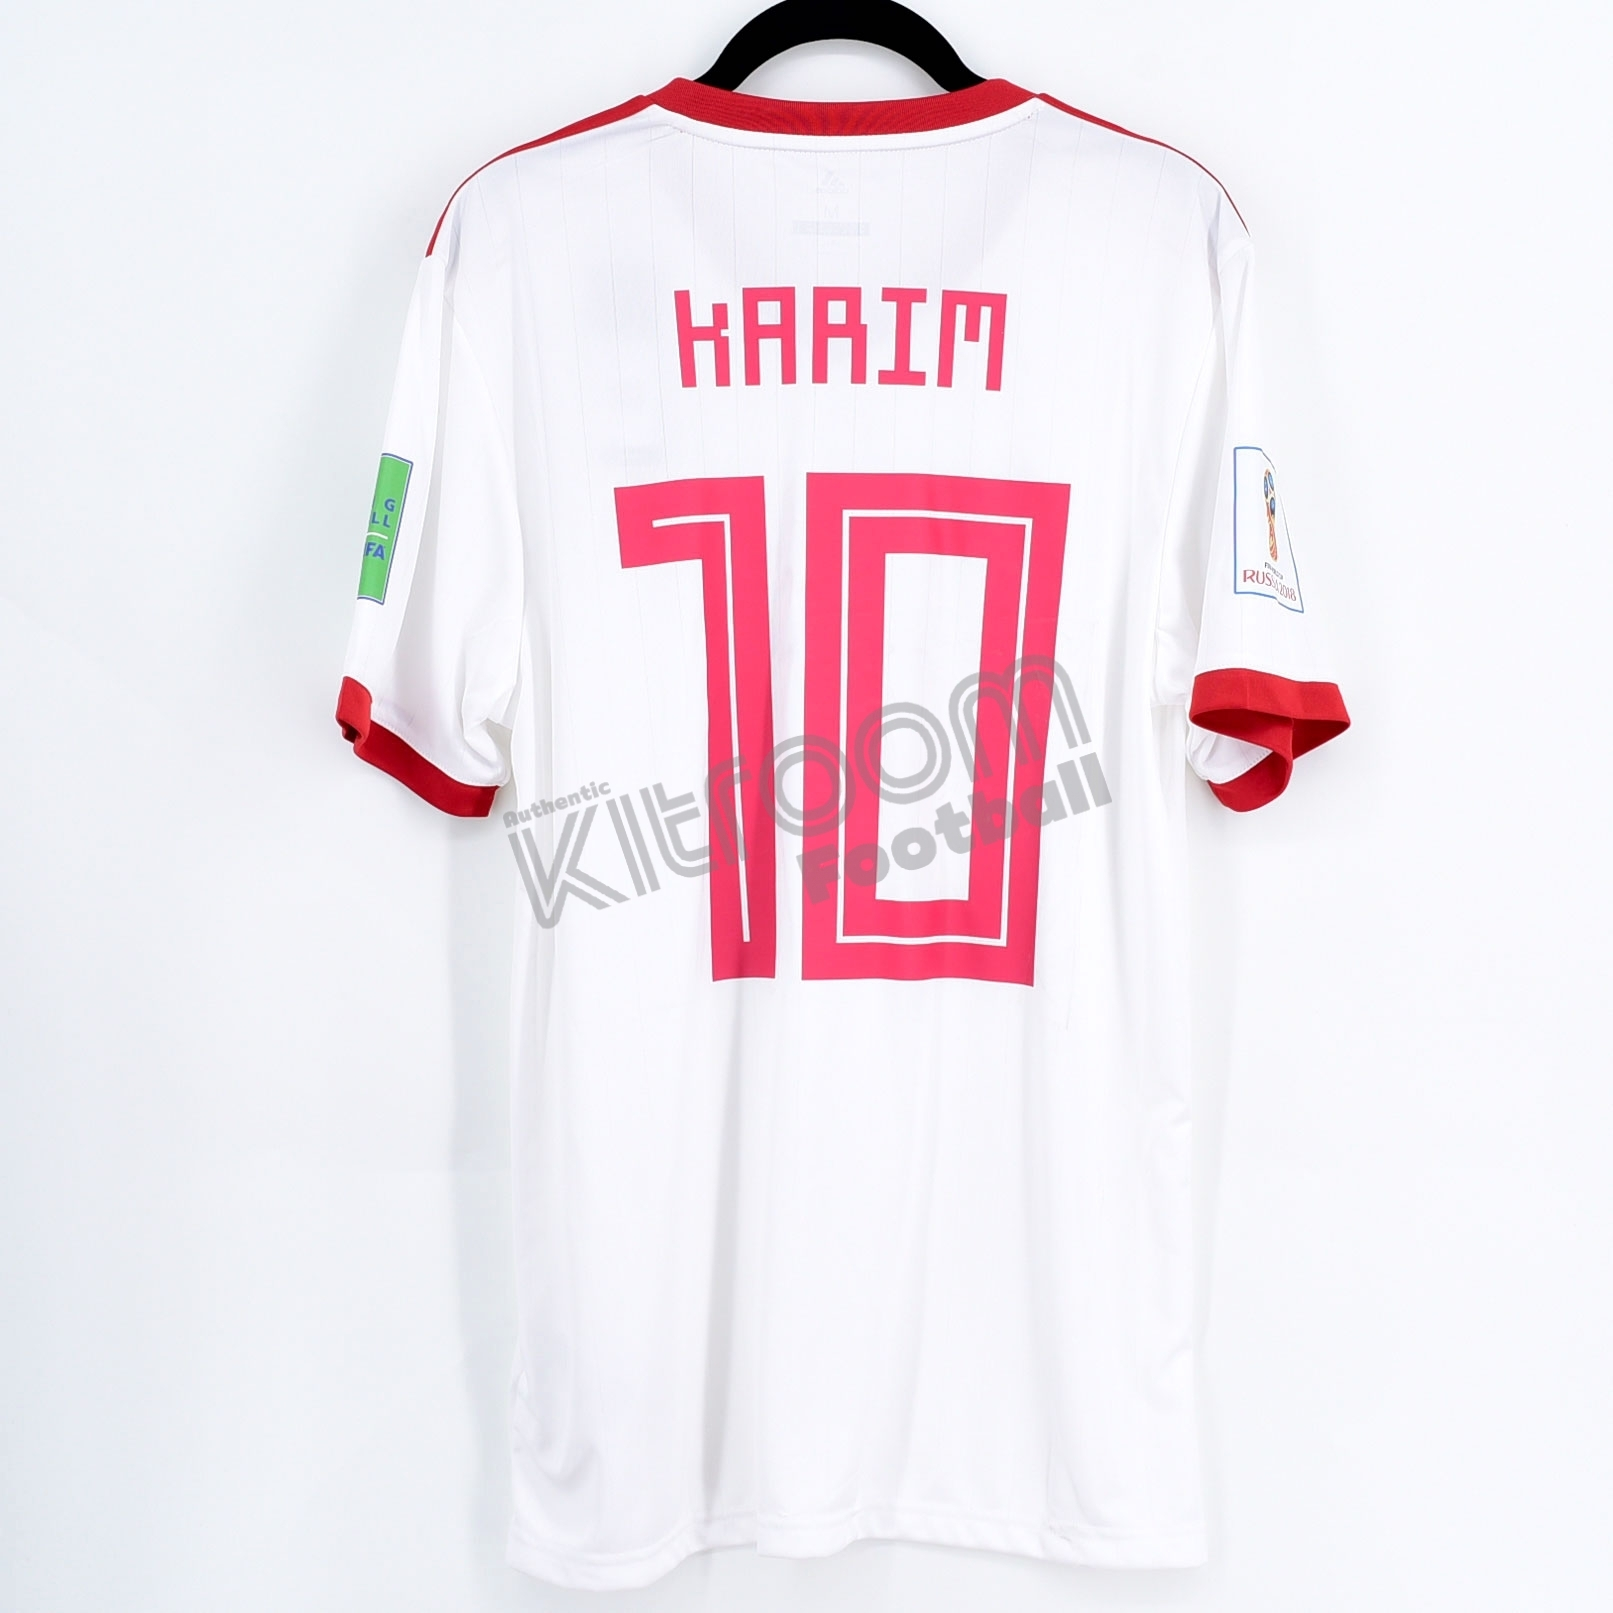 new style 3bbc9 93cf3 Details about Iran World Cup 2018 Russia Home Player Issue Shirt #10 KARIM  vs Portugal Jersey